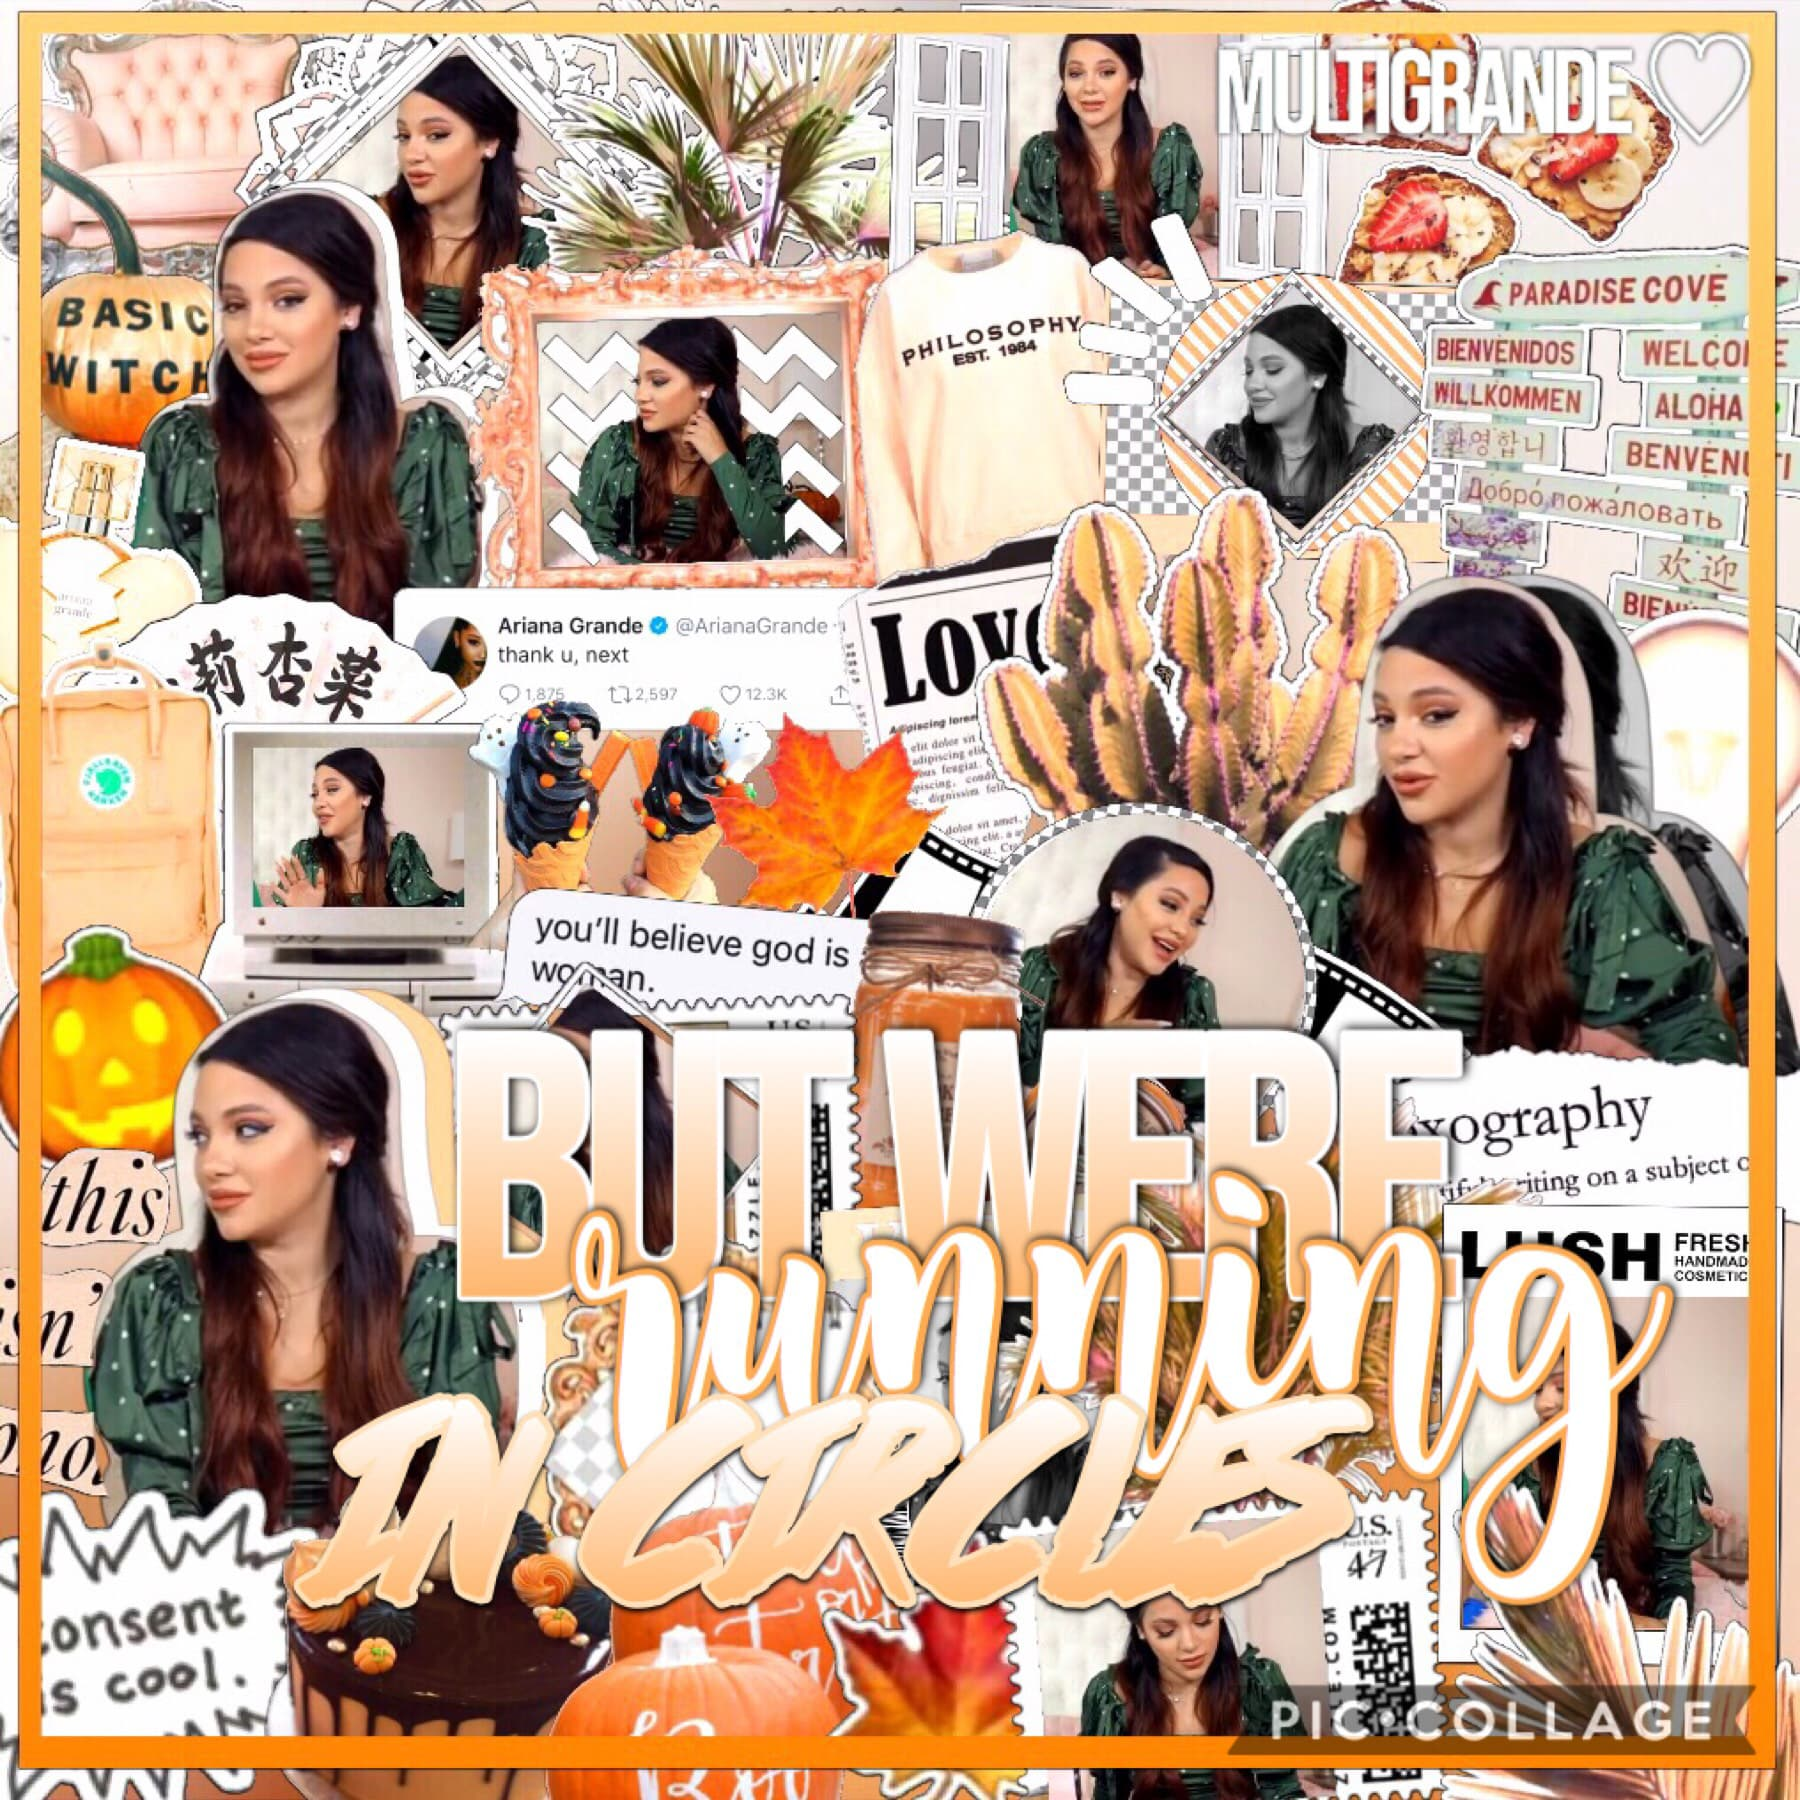 good morning! not my best but its cute🧡 excited bc im going to a pumpkin patch today!🍂🎃